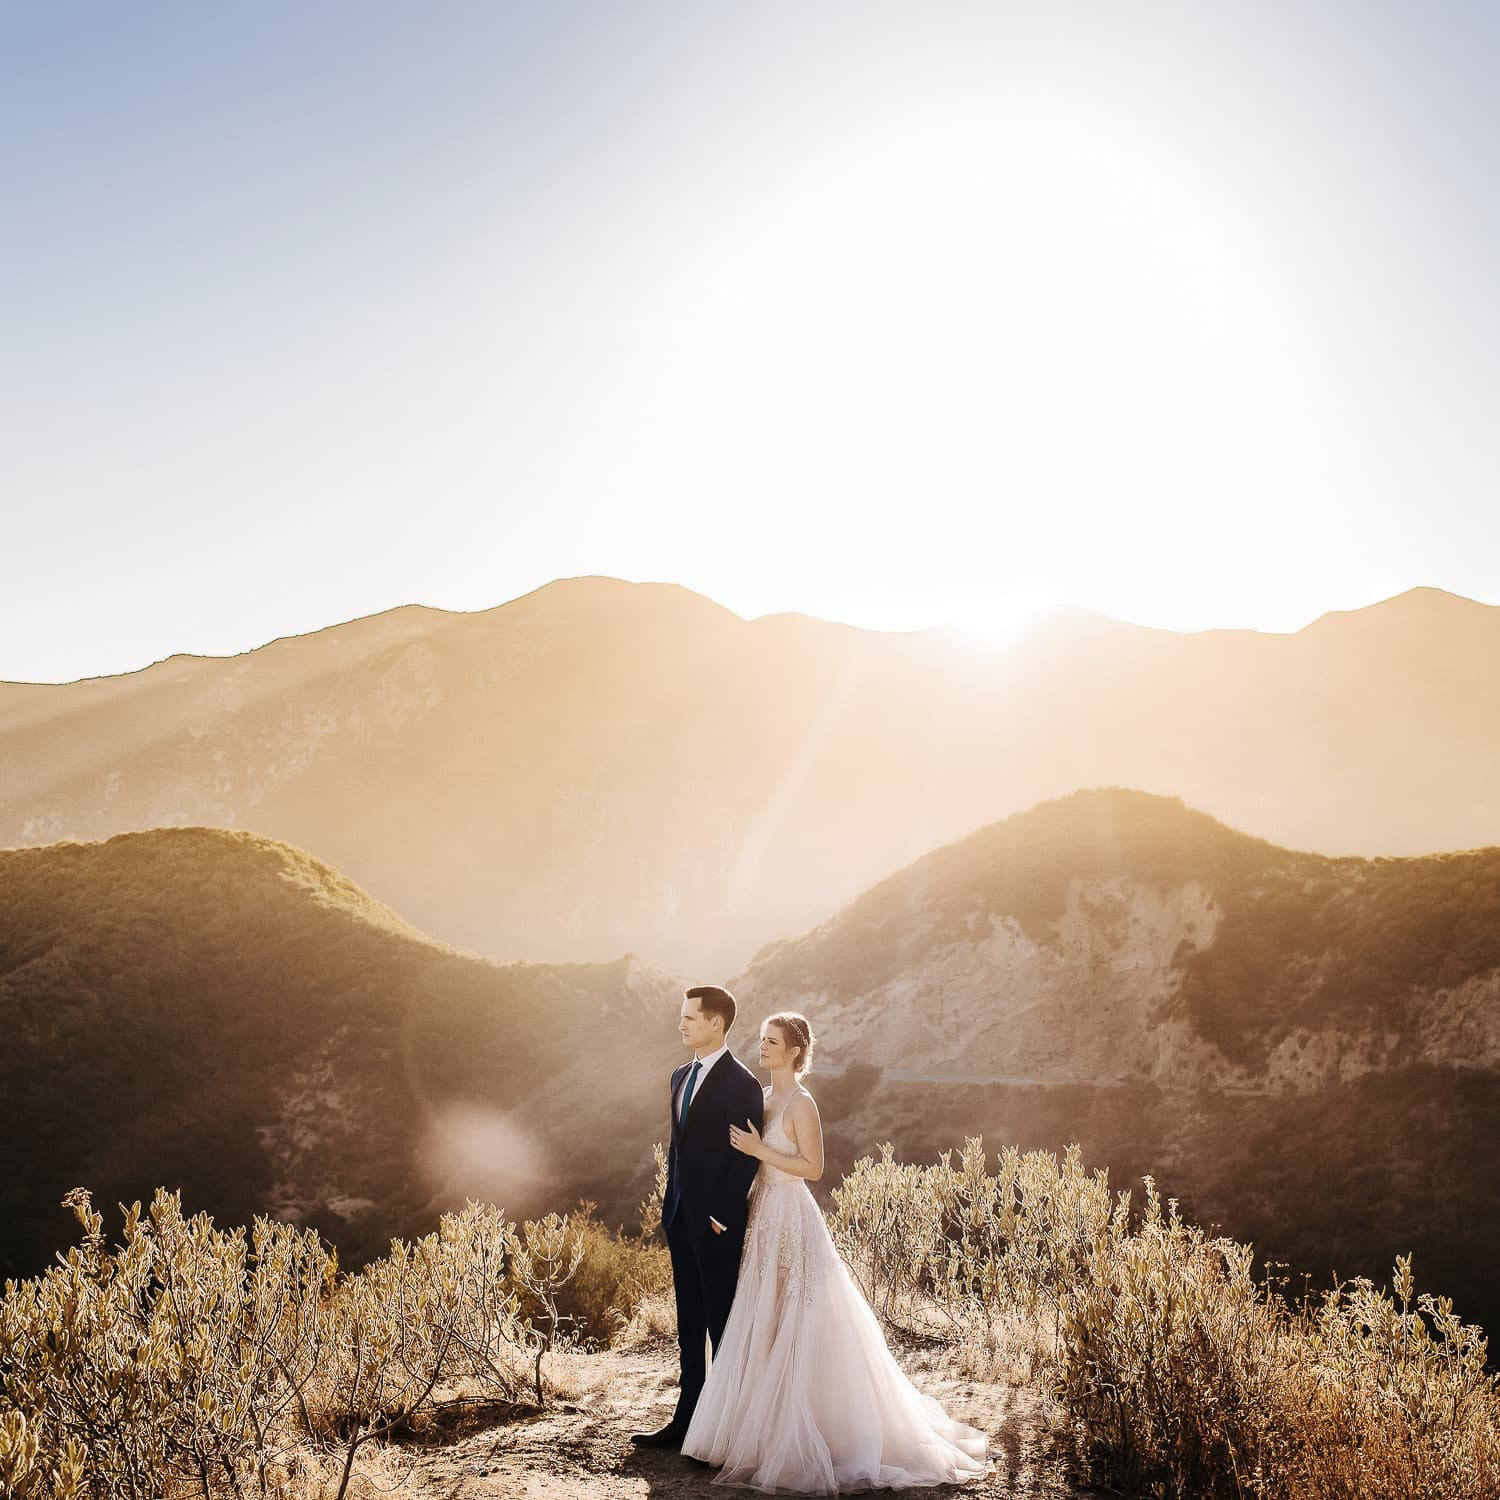 a dramatic editorial portrait of a bride & groom standing together and facing outwards on top of a mountain in the Angeles National Forest